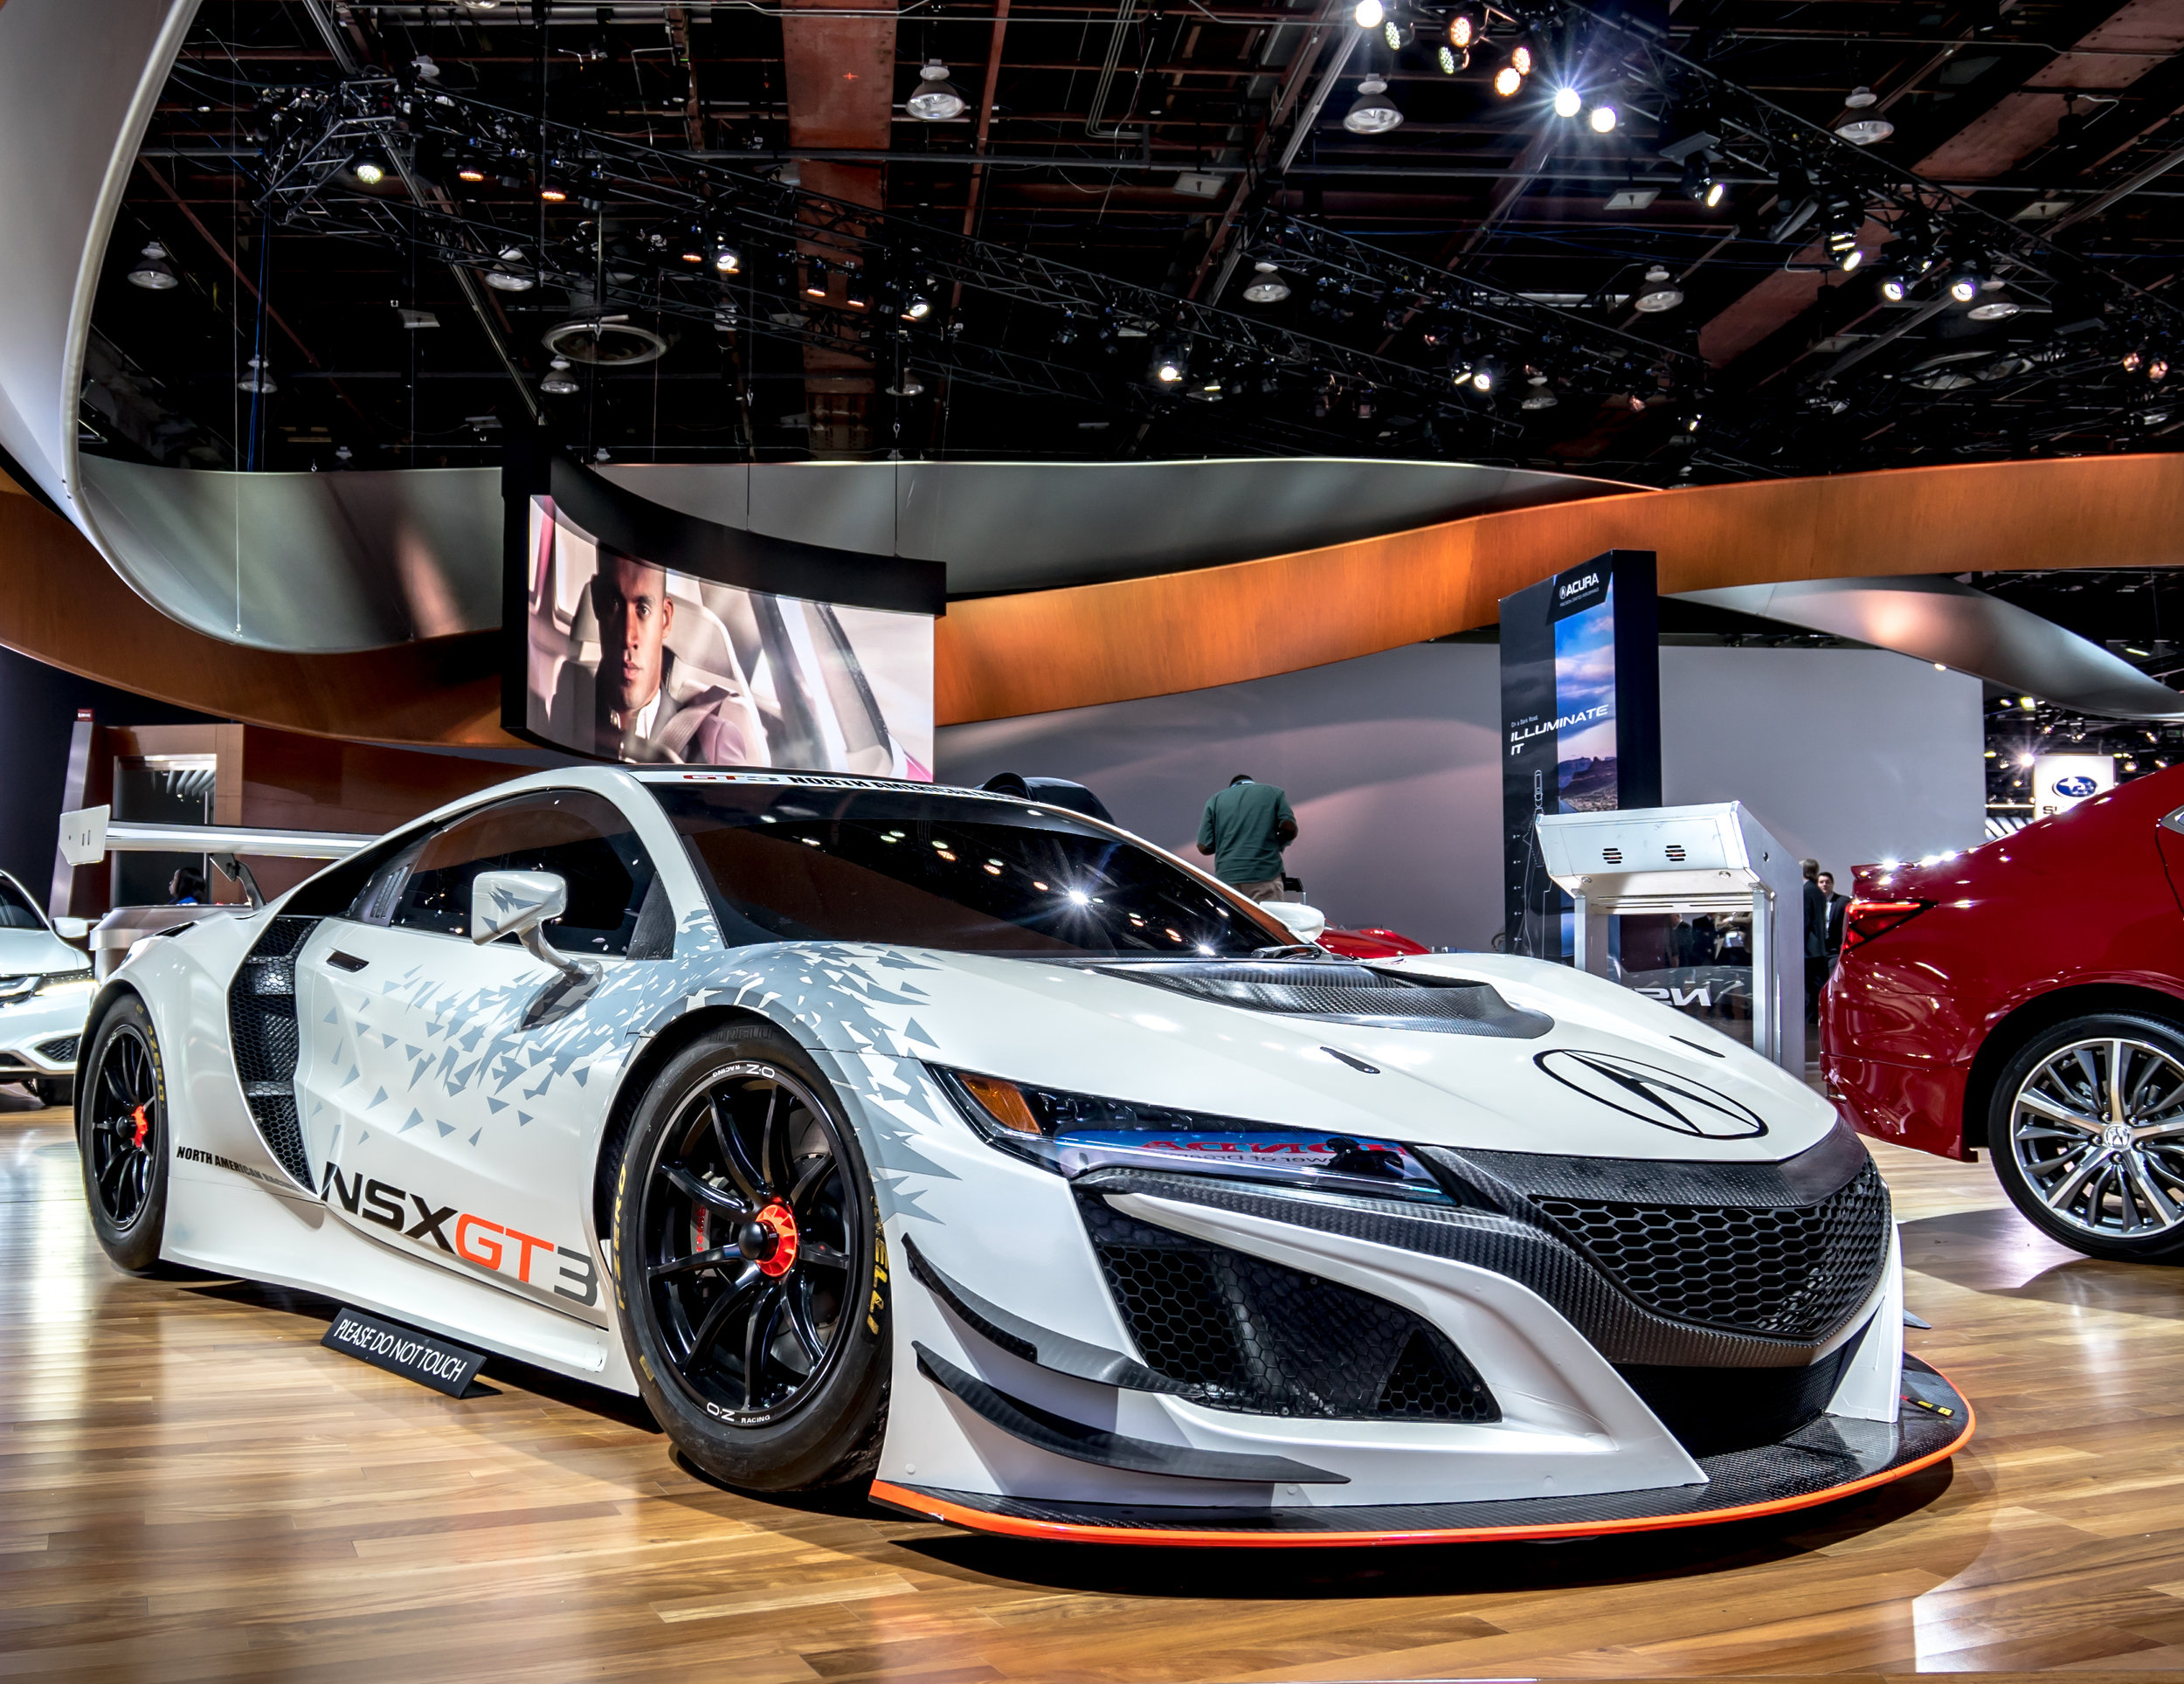 2017 Acura NSX GT3 Race Car